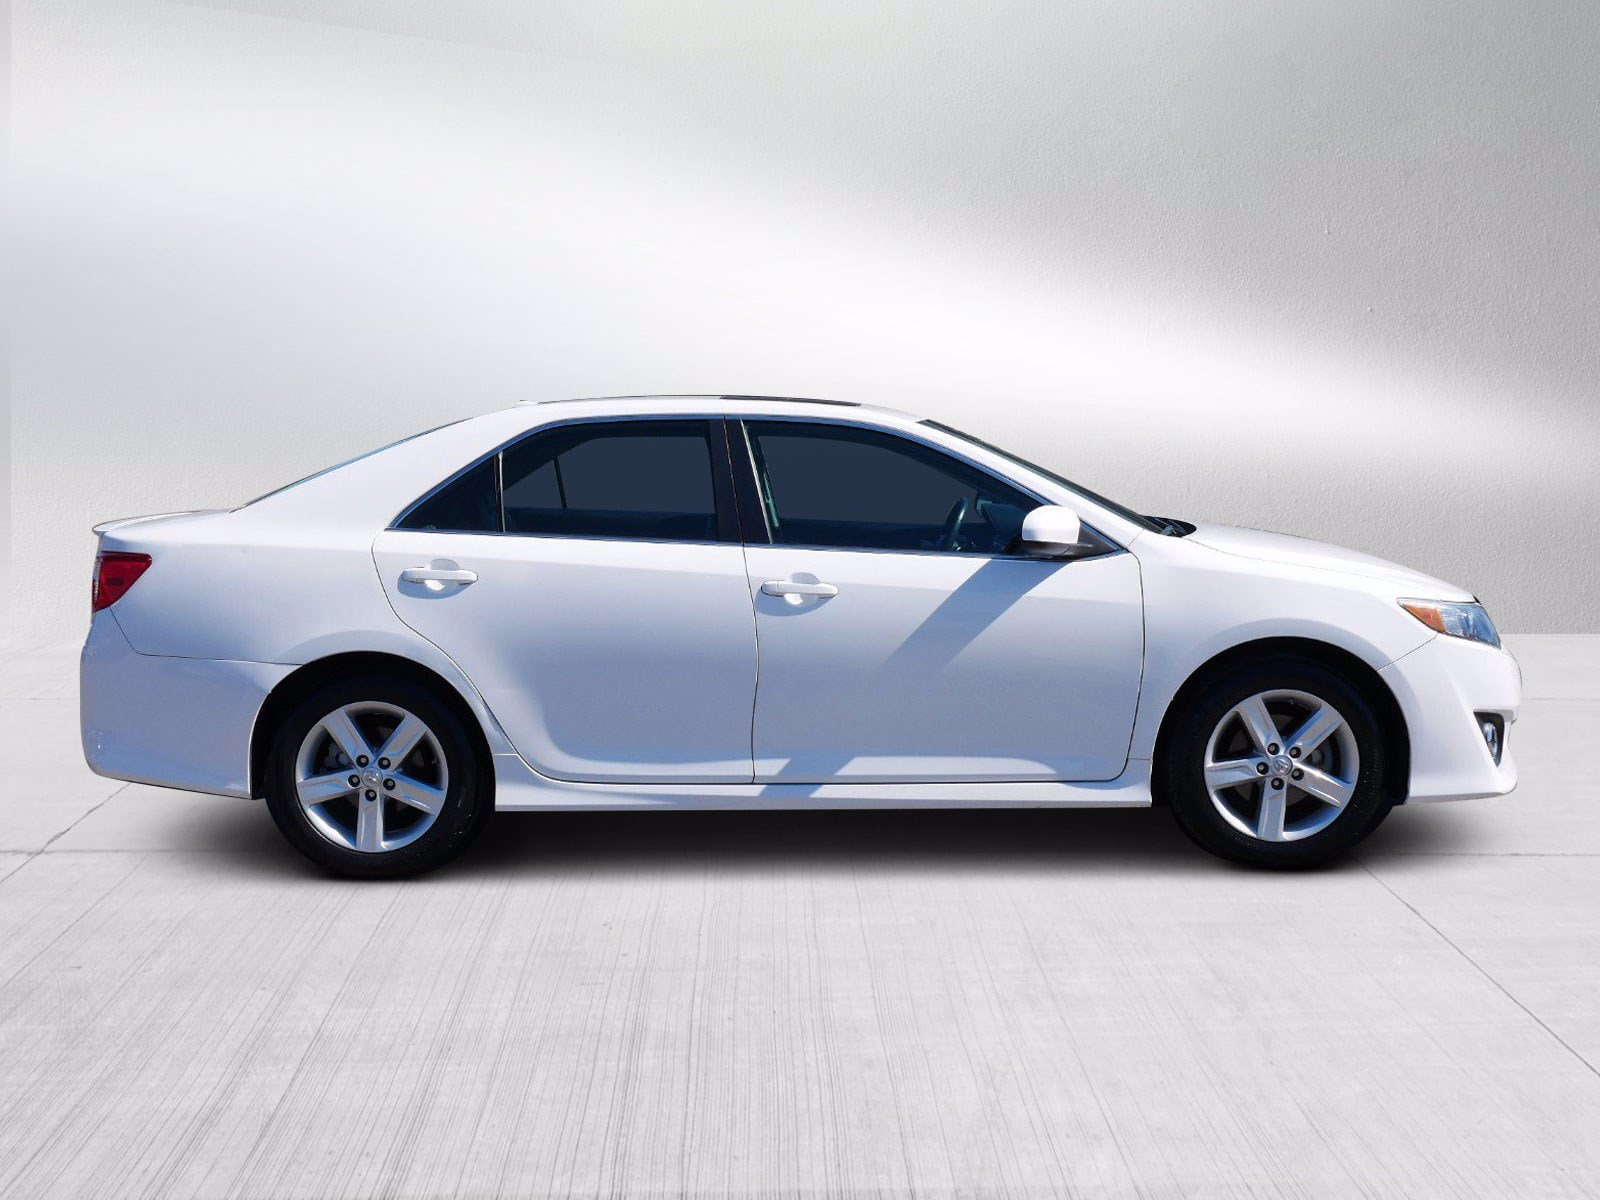 Used 2014 Toyota Camry SE with VIN 4T1BF1FK8EU743913 for sale in Bloomington, Minnesota